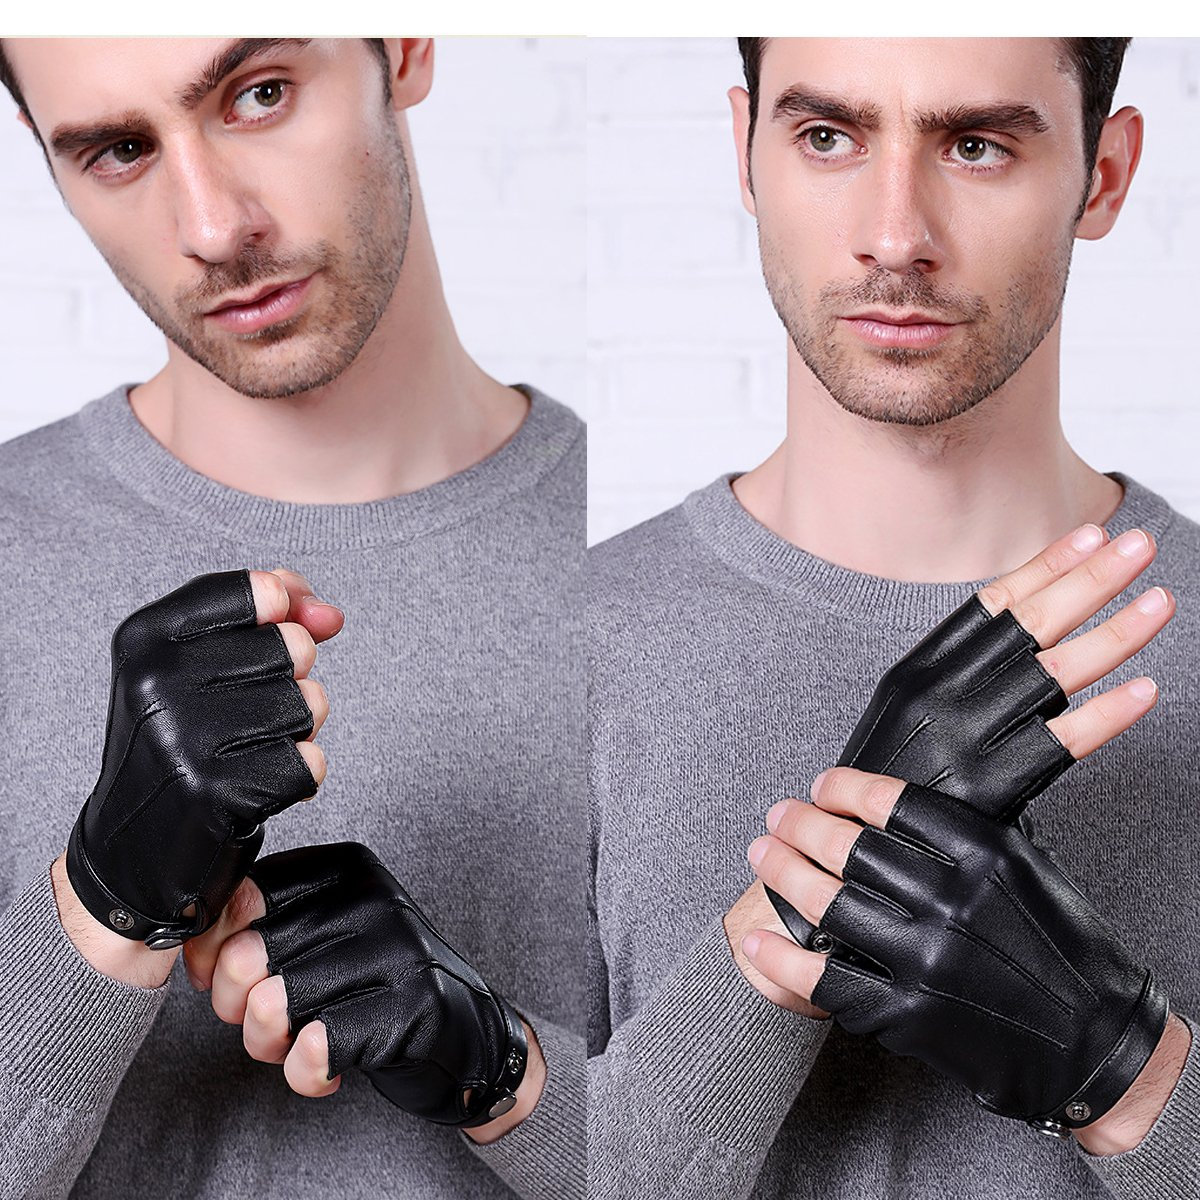 Fingerless Gloves PU Leather Gloves Touchscreen Texting Dress Driving Moto Glove for Men Women Teens (L) by gloveslove (Image #6)